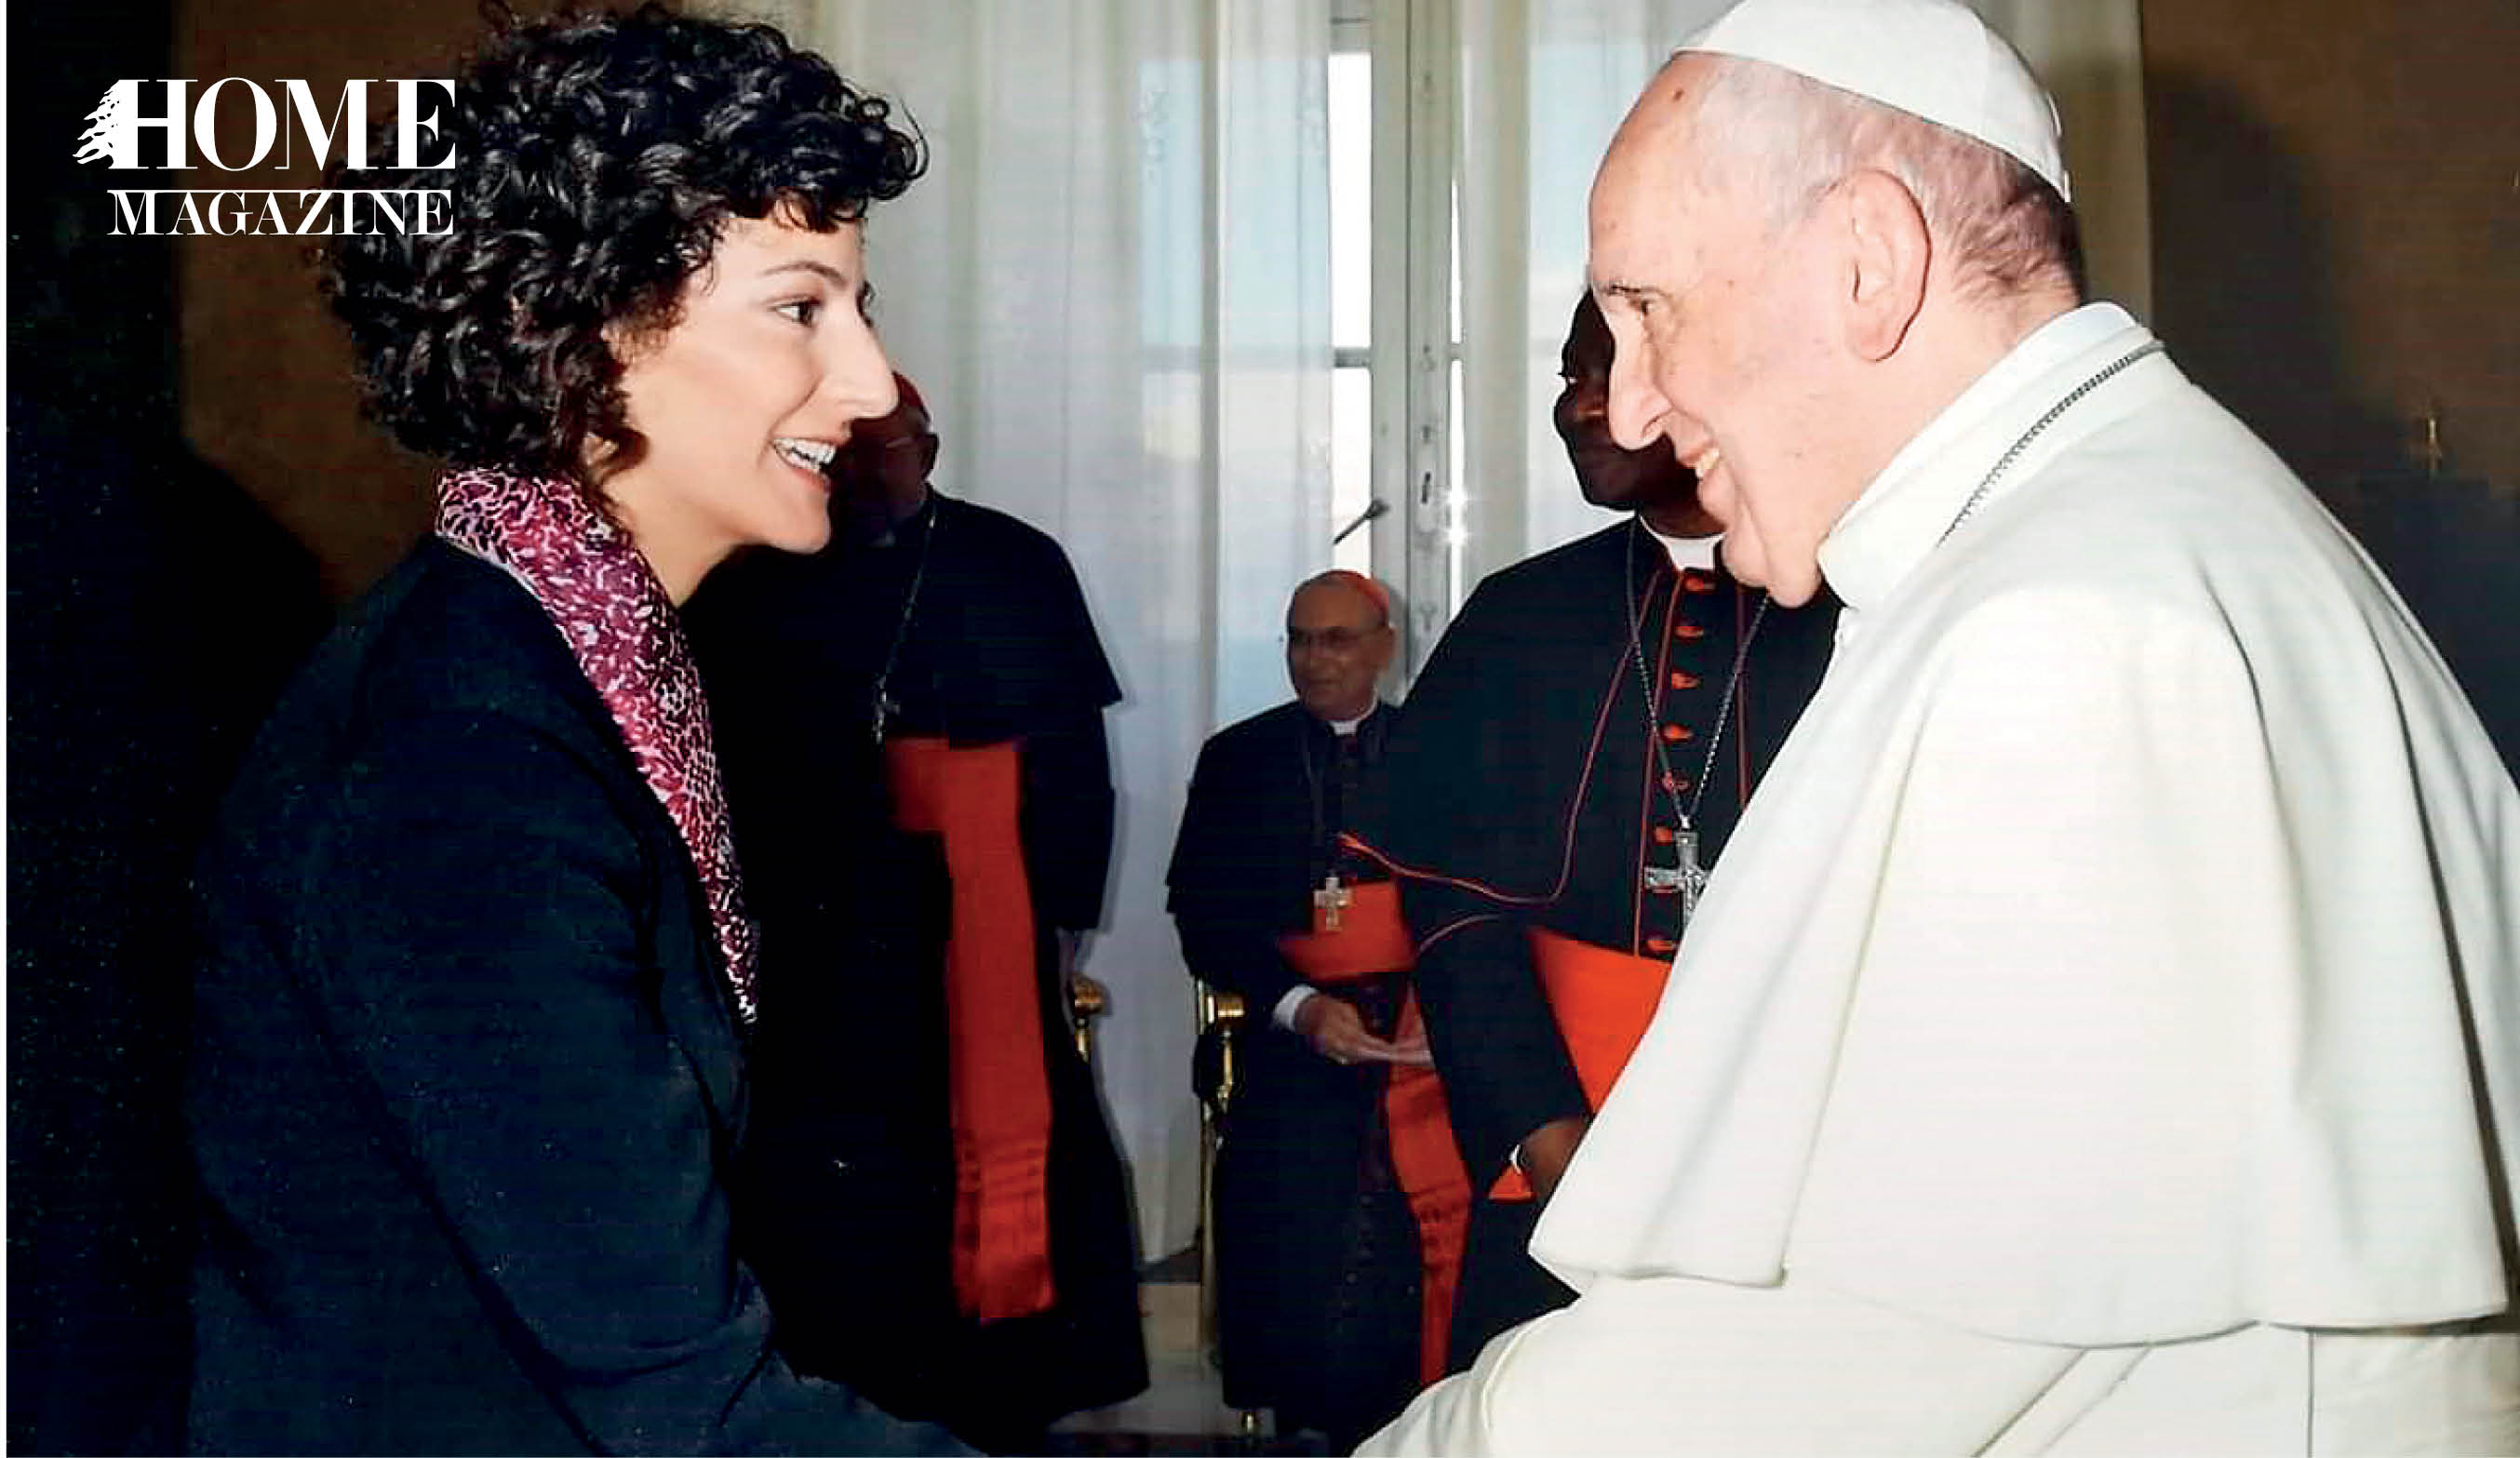 Woman shaking hand of Pope